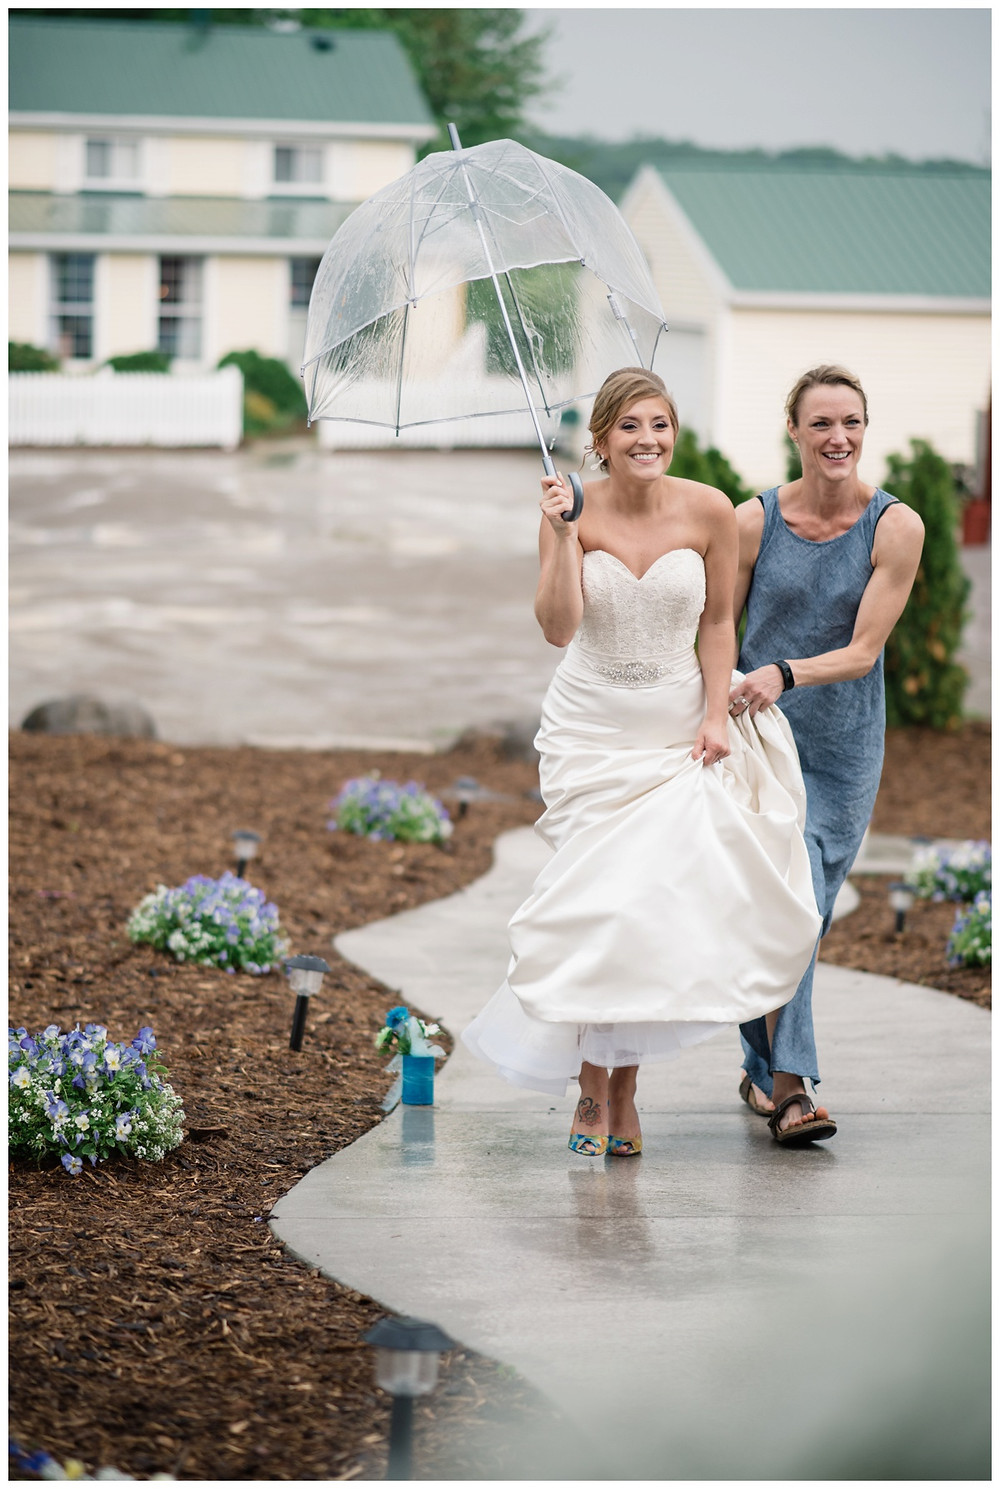 bride-walking-with-umbrella-to-ceremony-at-brighton-acres-wedding-by-appleton-wedding-photographer-kyra-rane-photography